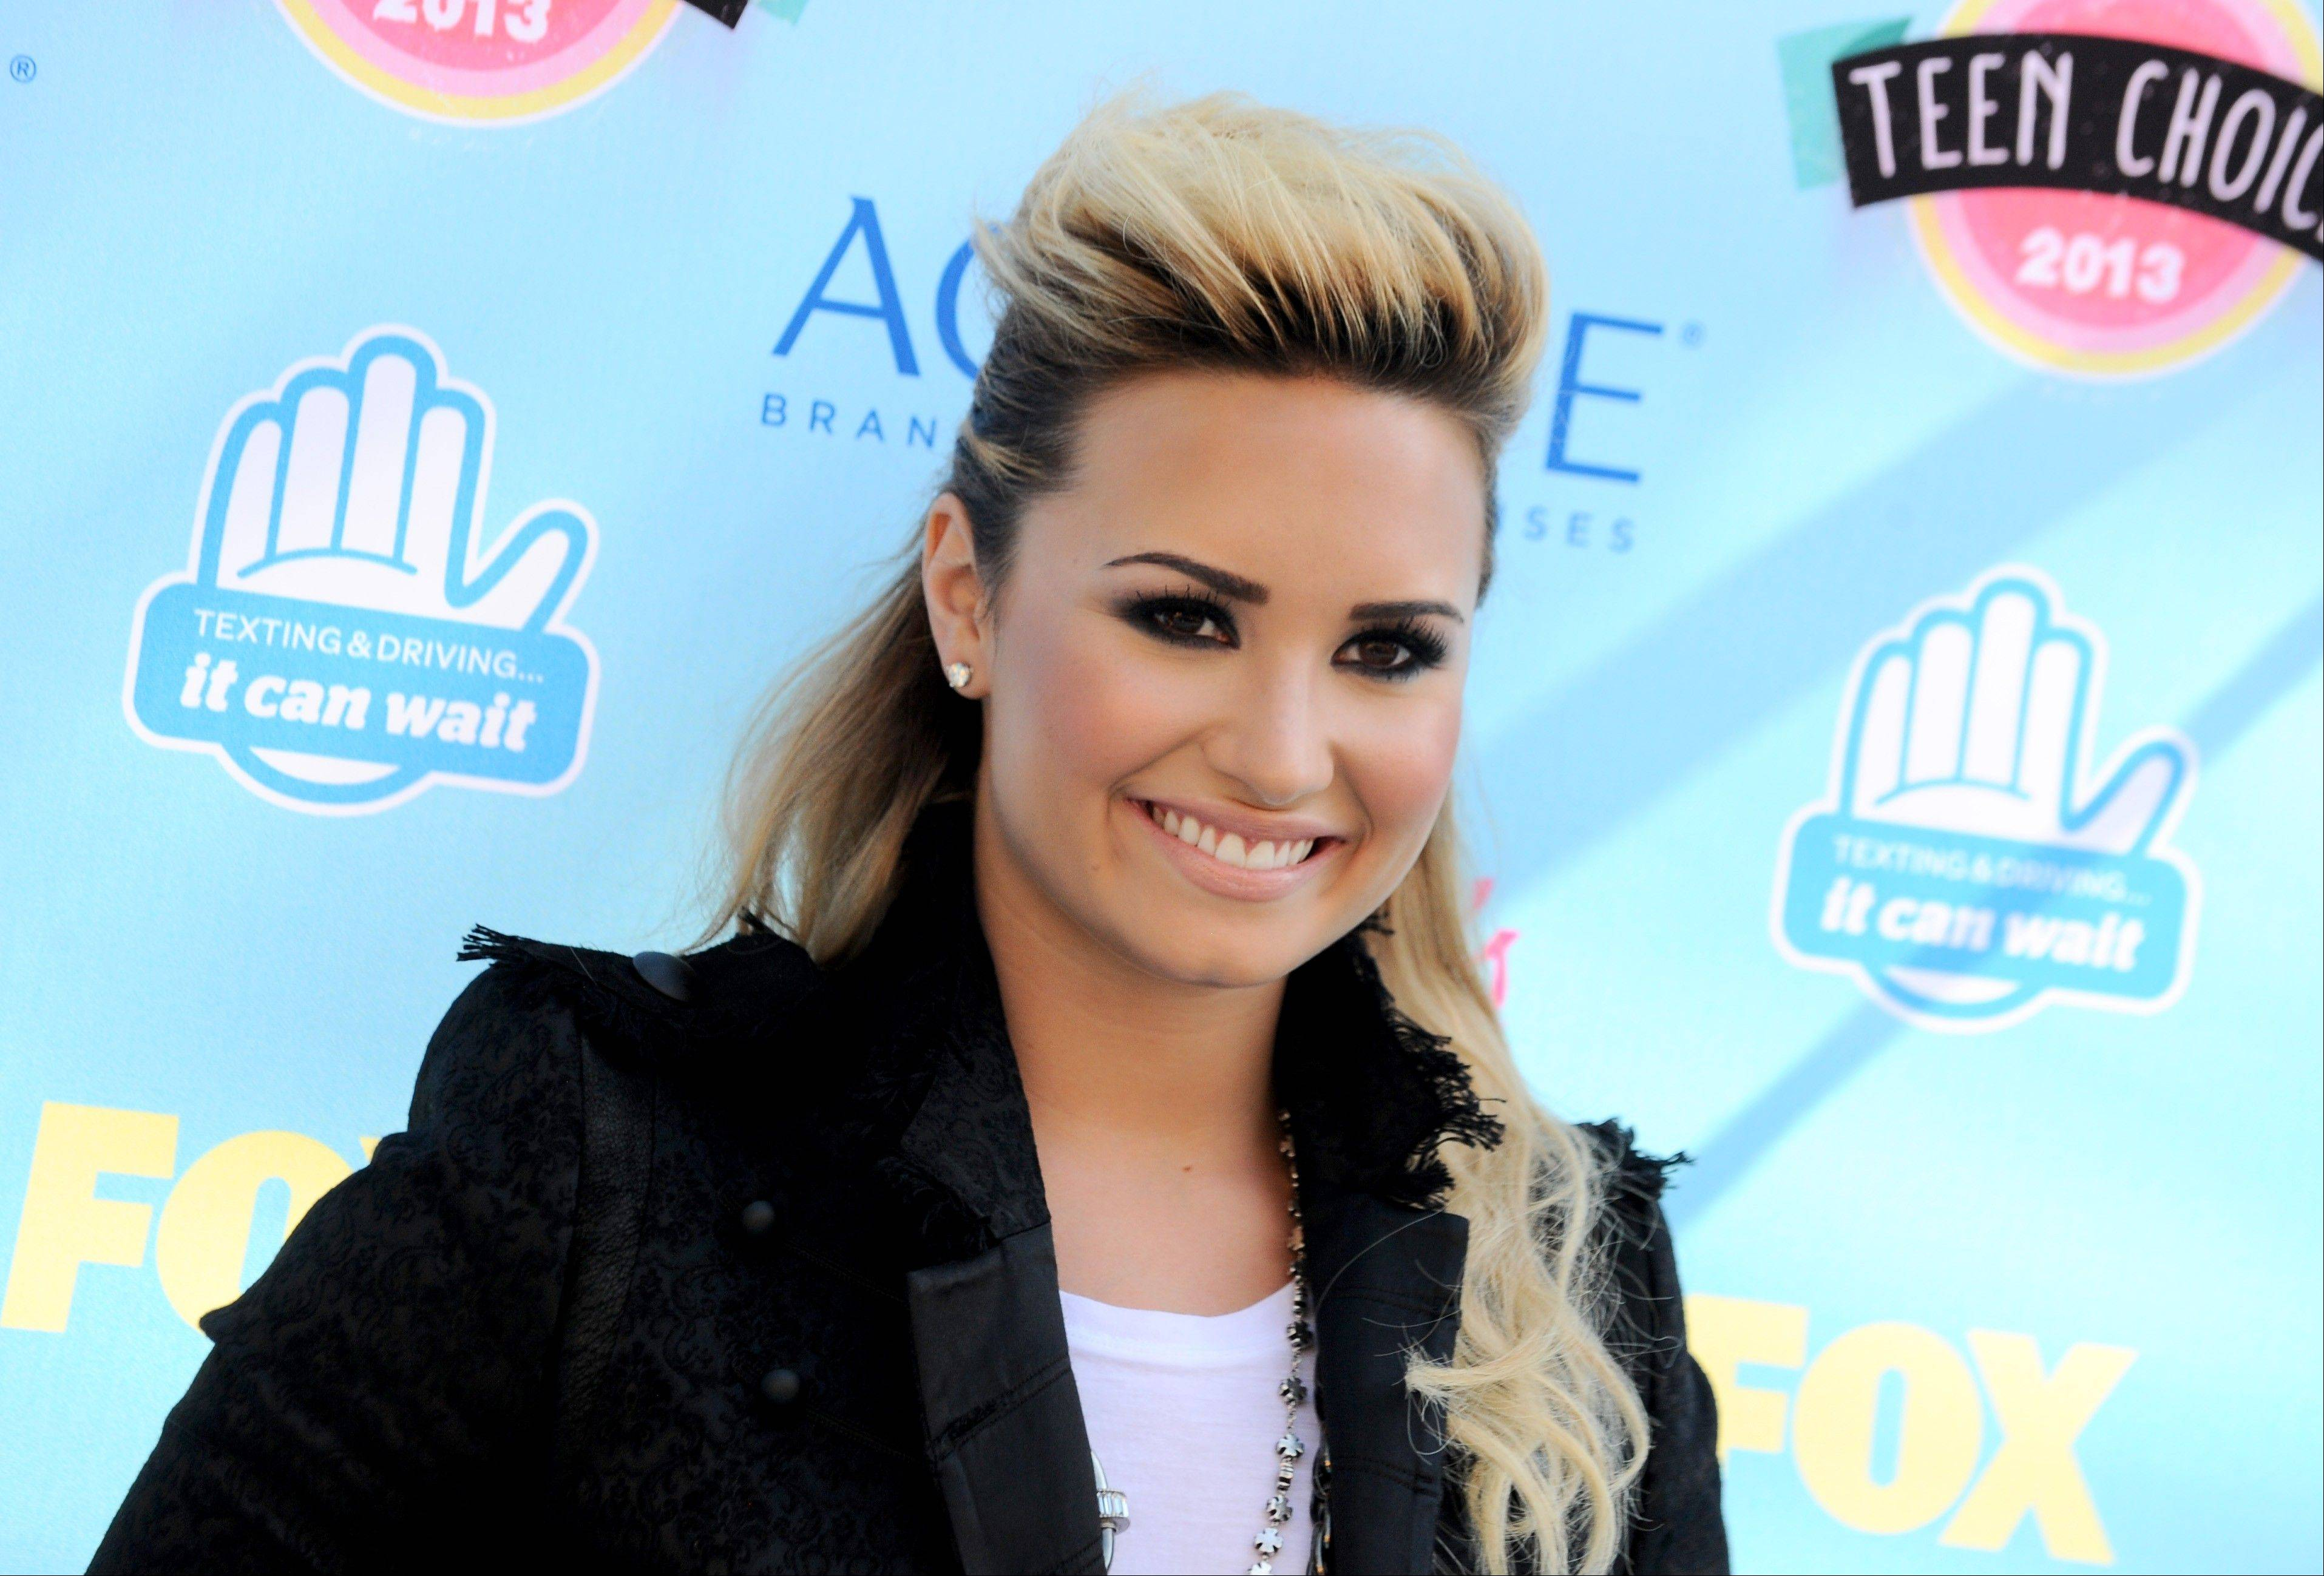 """X Factor"" judge and singer Demi Lovato arrives at the Teen Choice Awards at the Gibson Amphitheater on Sunday in Los Angeles."